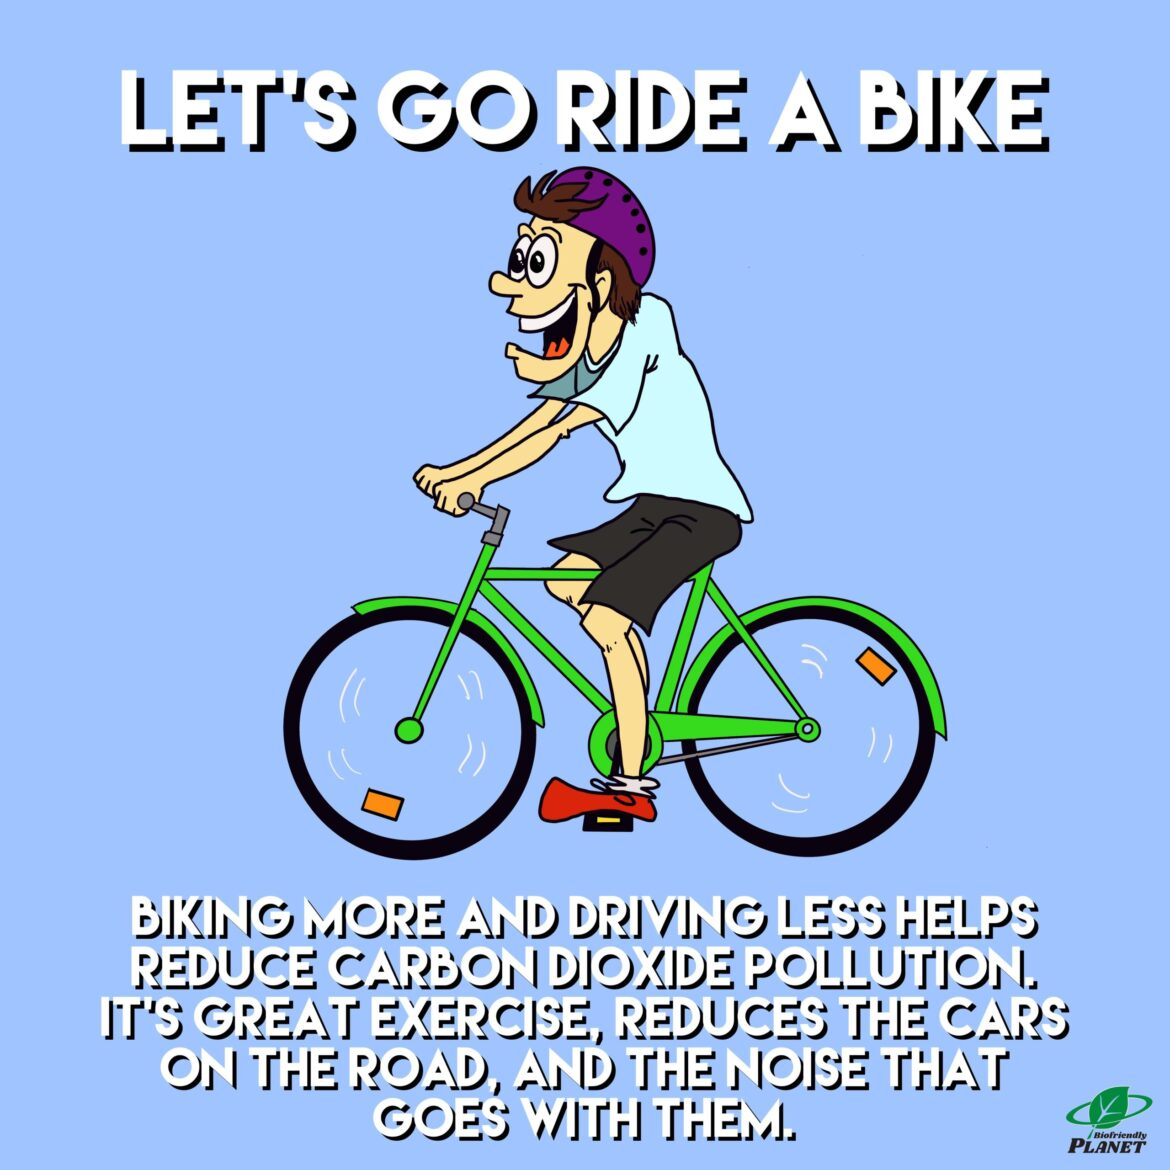 Let's Go Ride A Bike | Tuesday Tip